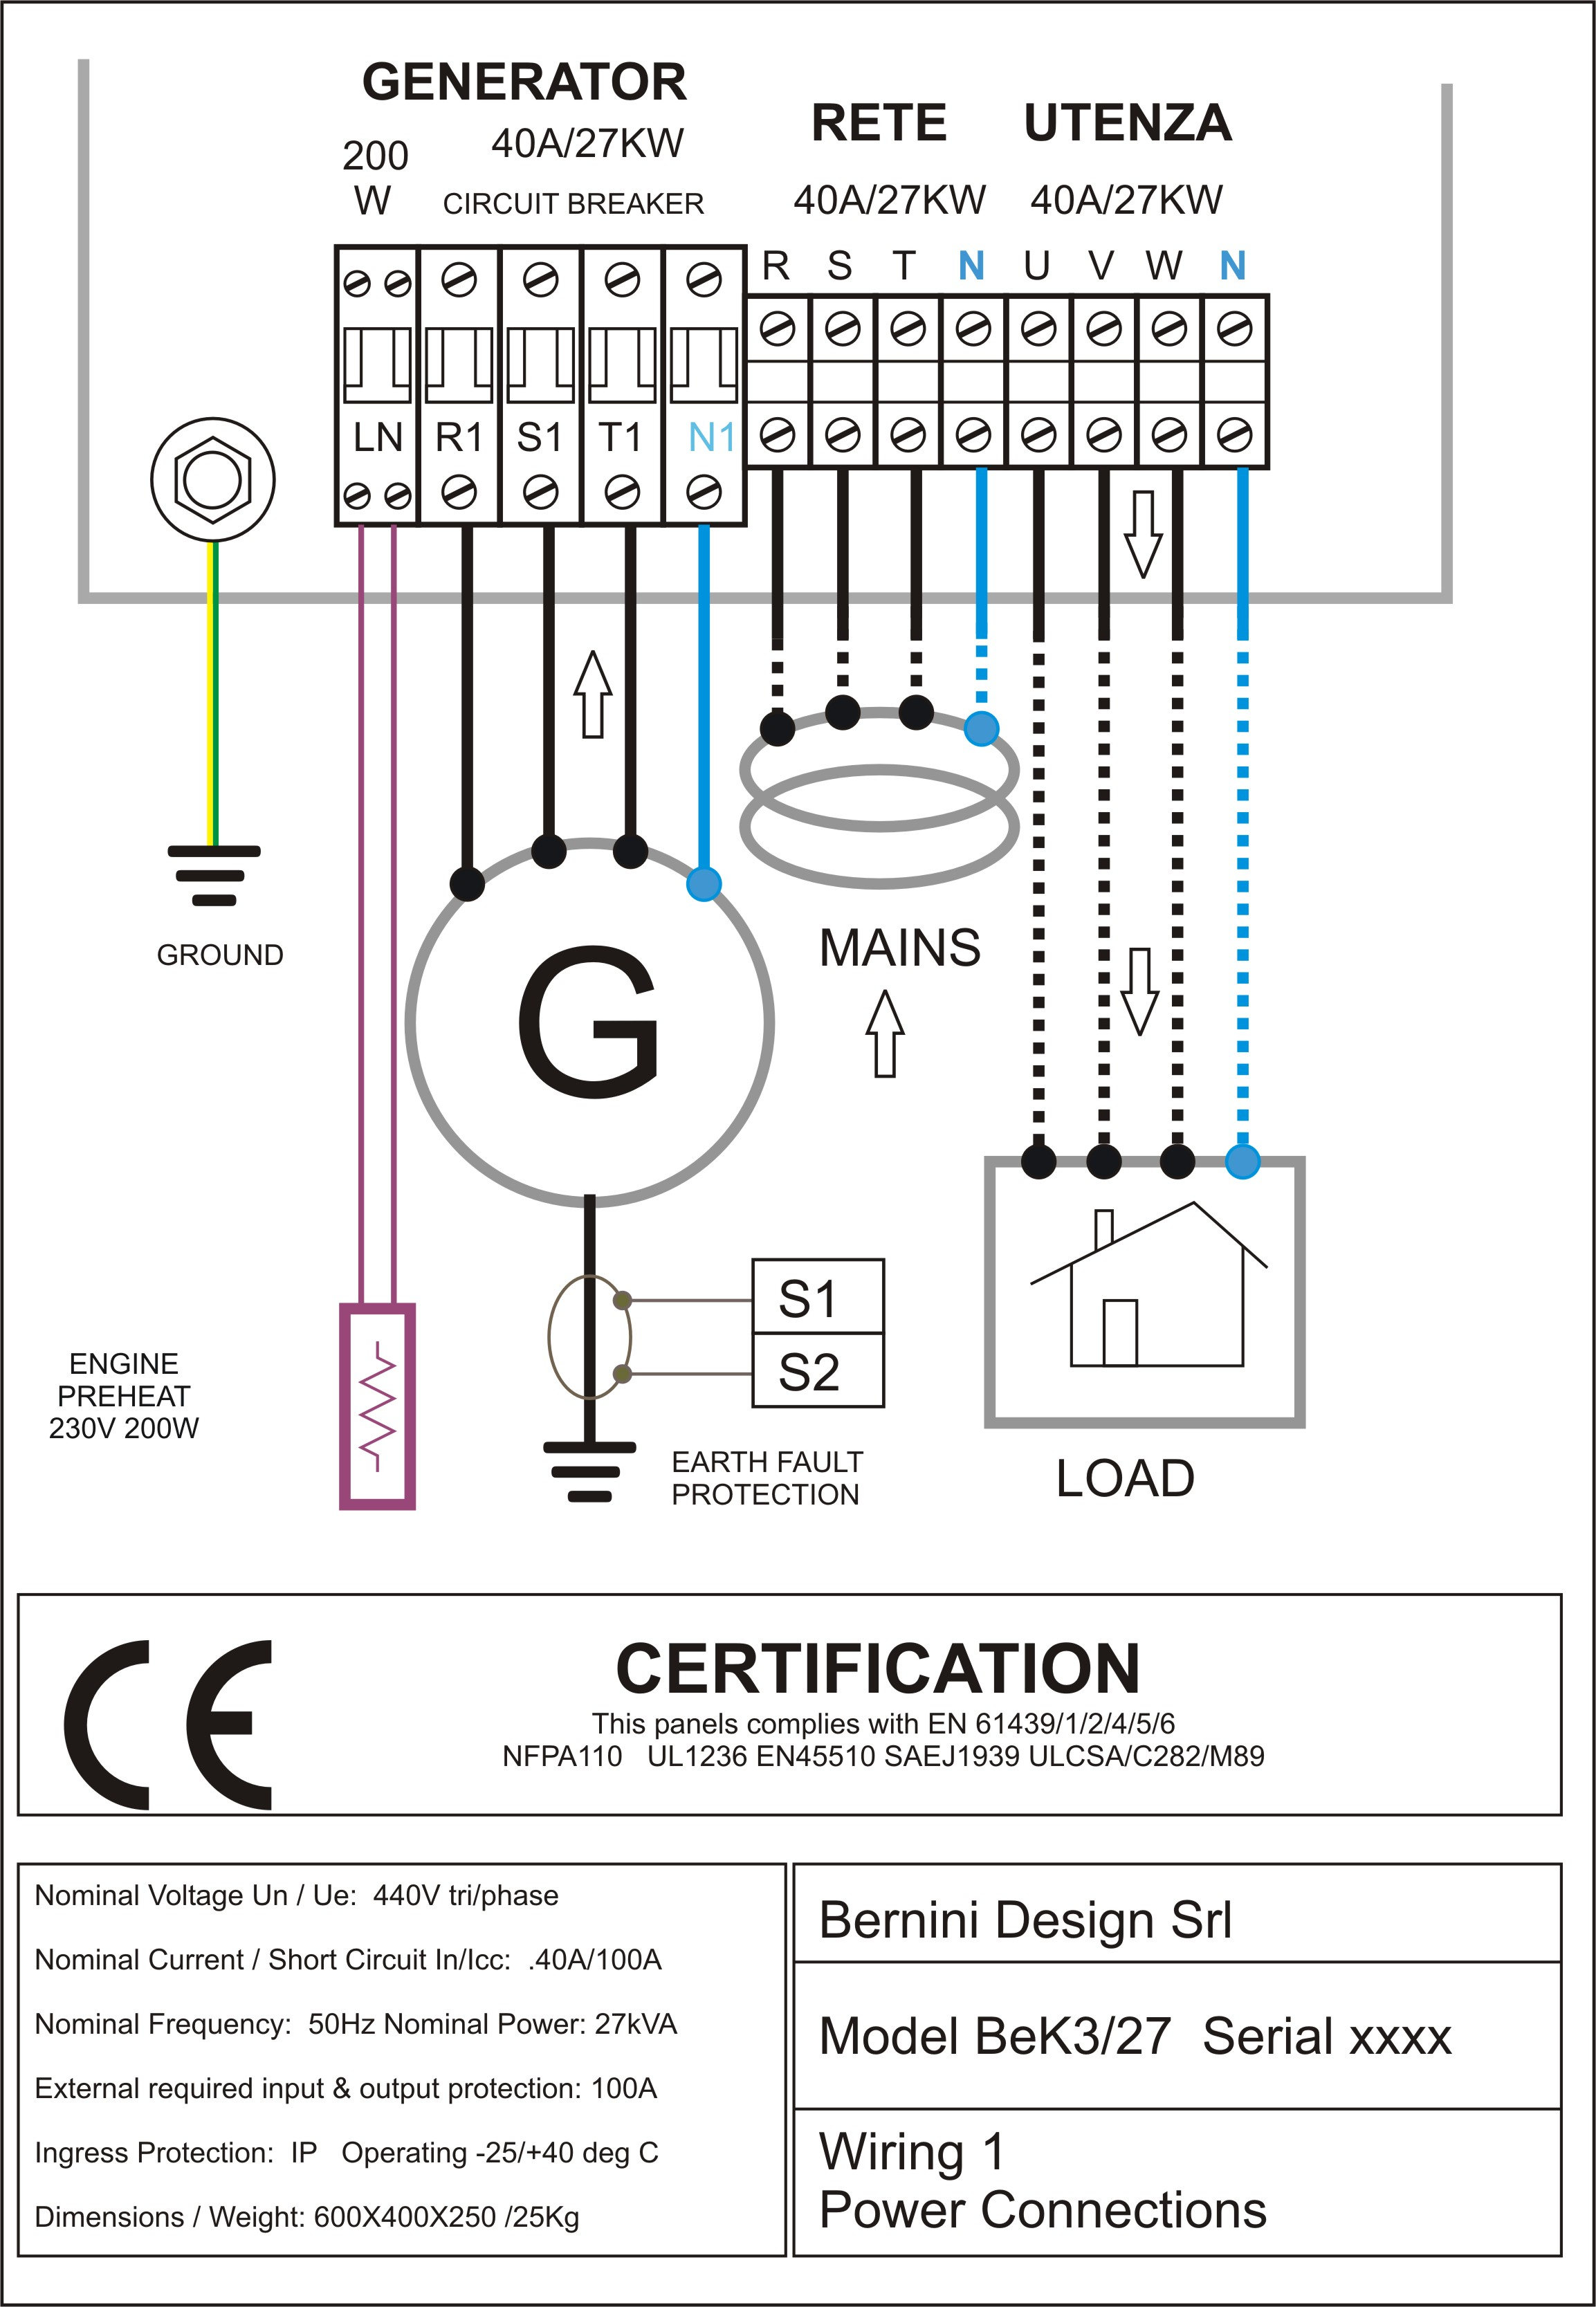 Diesel Generator Control Panel Wiring Diagram AC Connections wiring diagram generator readingrat net stamford alternator wiring diagrams pdf at crackthecode.co